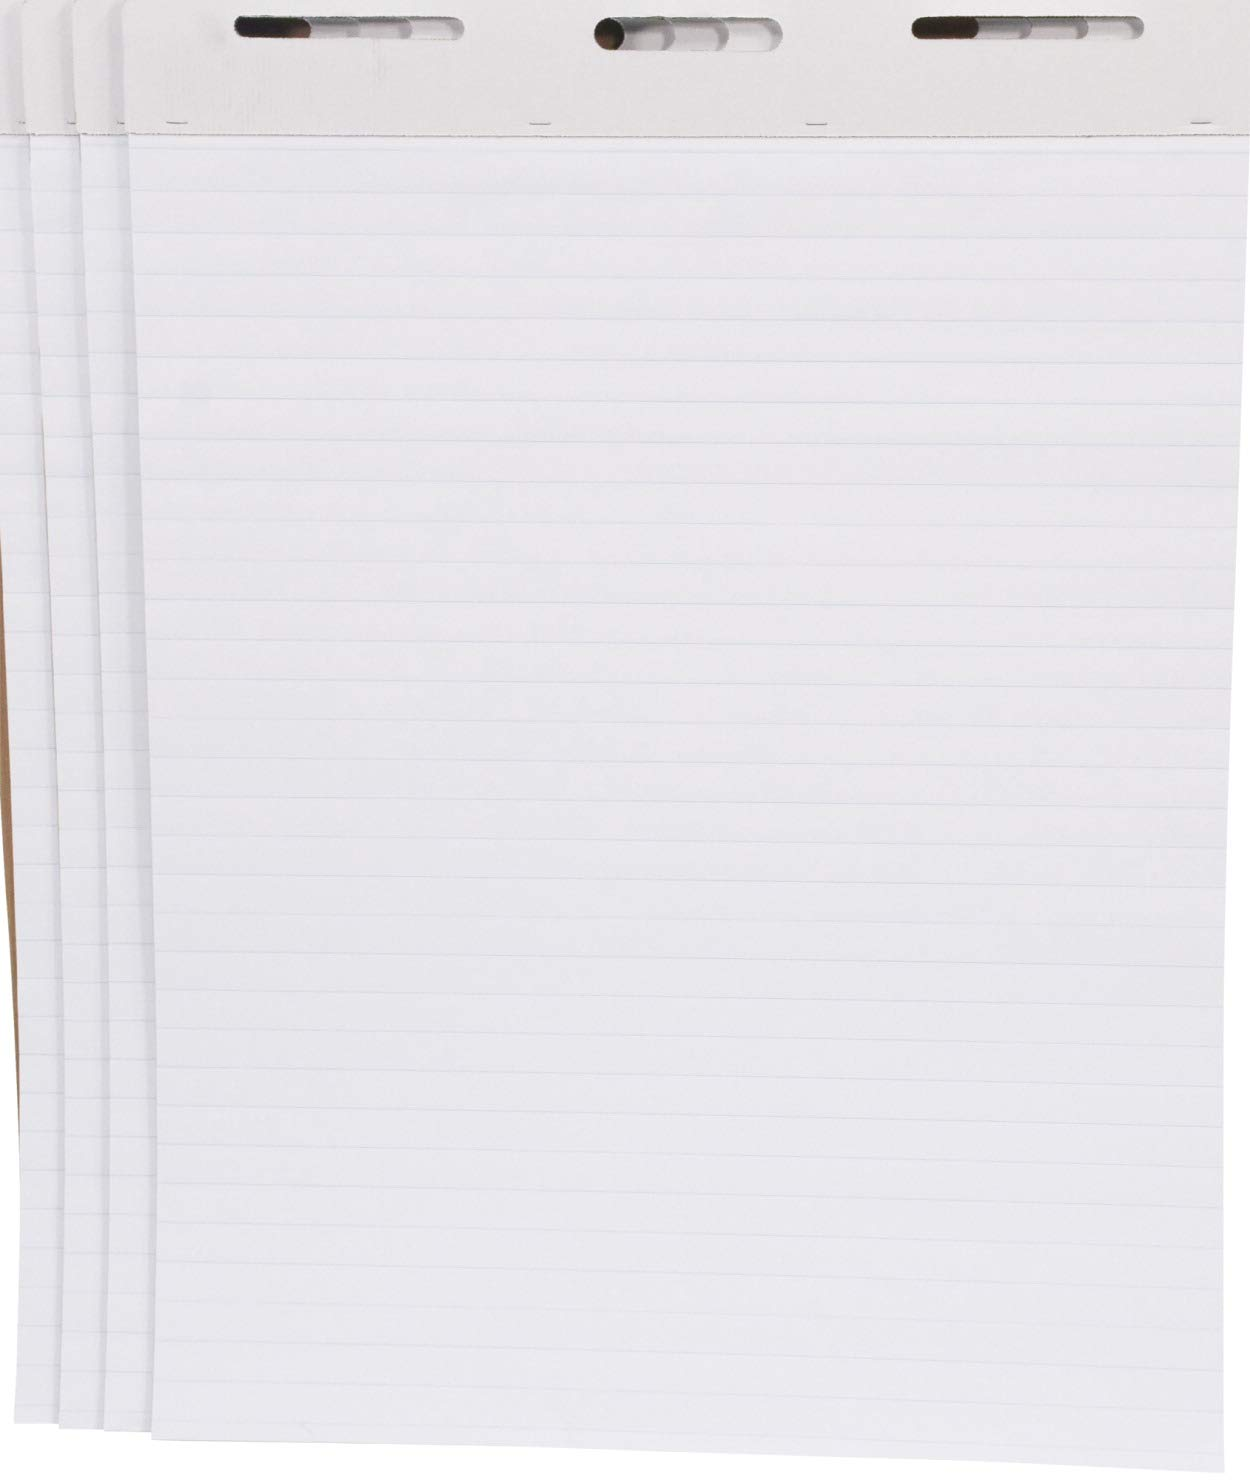 School Smart Ruled Easel Pads, 27 x 34 Inches, 50 Sheets, White, Pack of 4 - 1467043 by School Smart